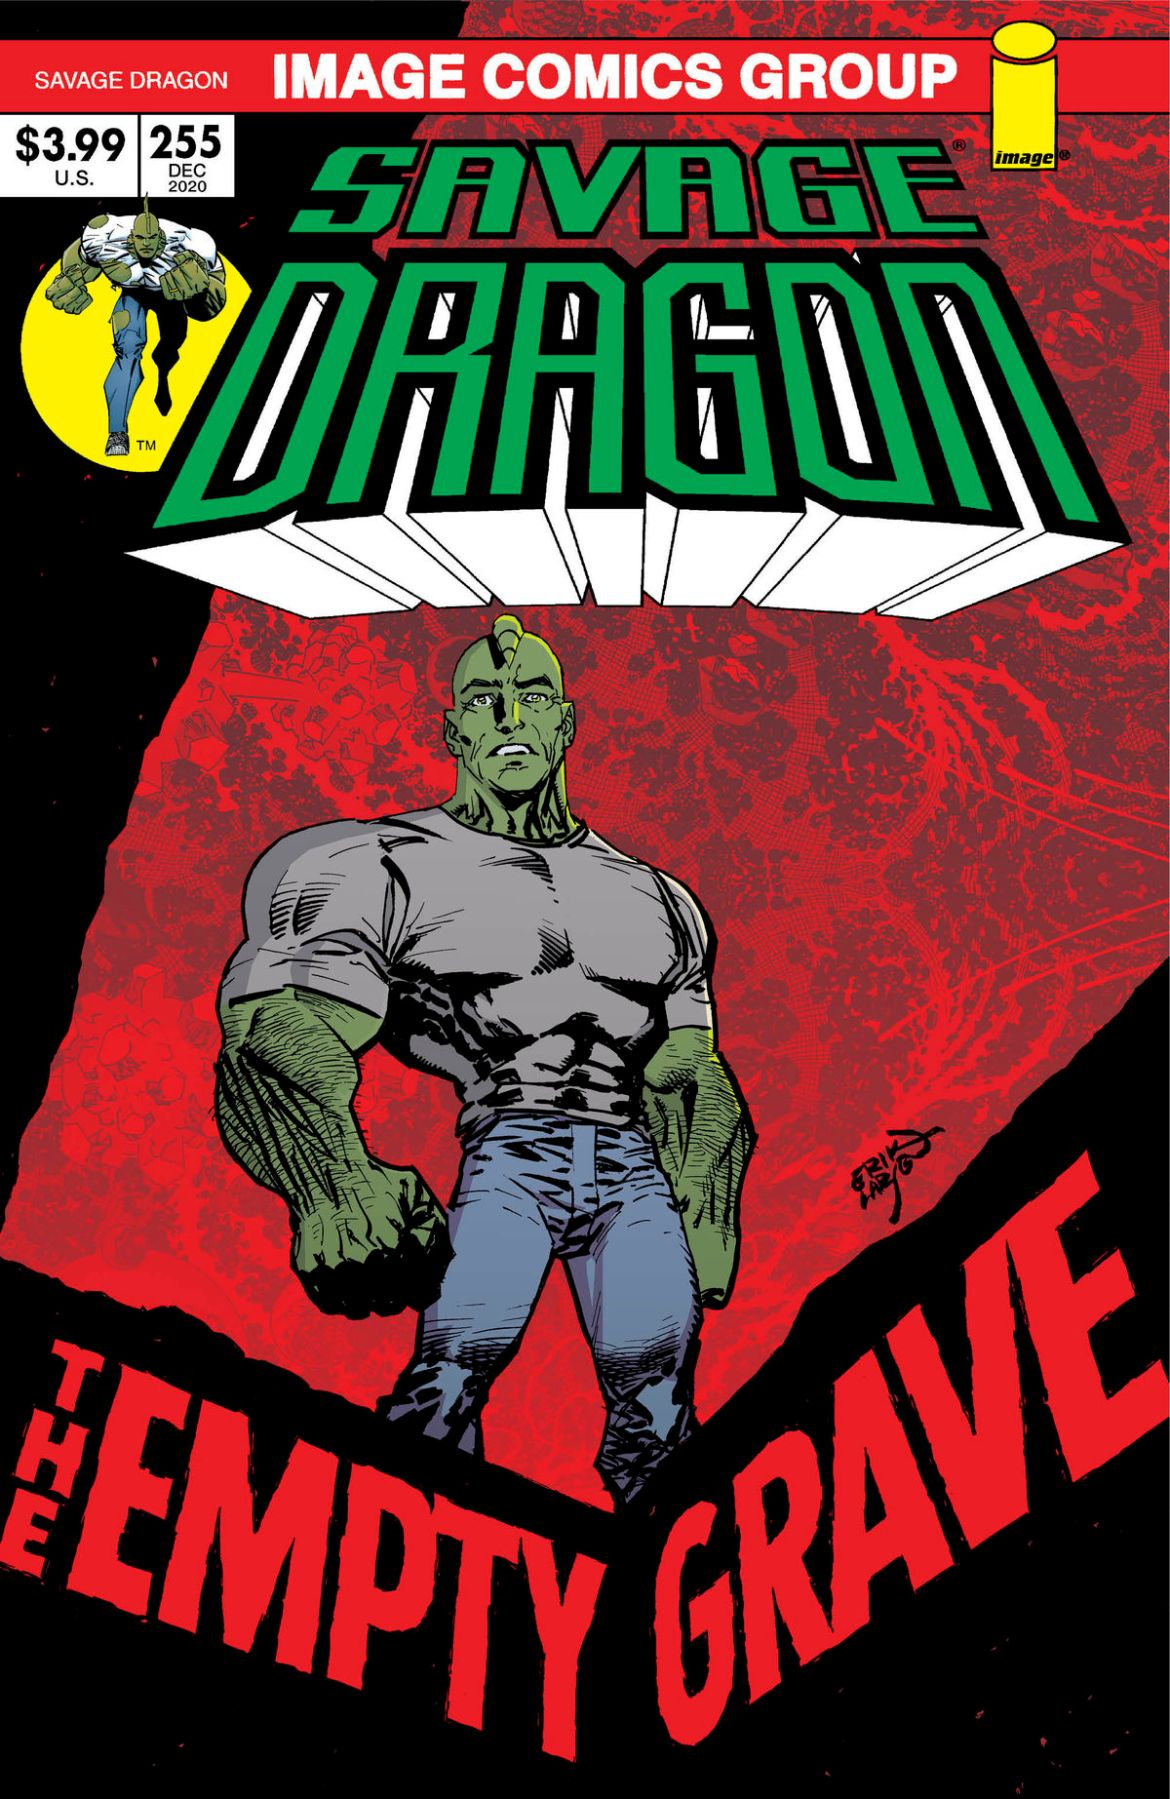 SD_255_70s_c6815a0147f8285e3b5042ebb3626151 SAVAGE DRAGON #254-256 to feature retro style variant covers